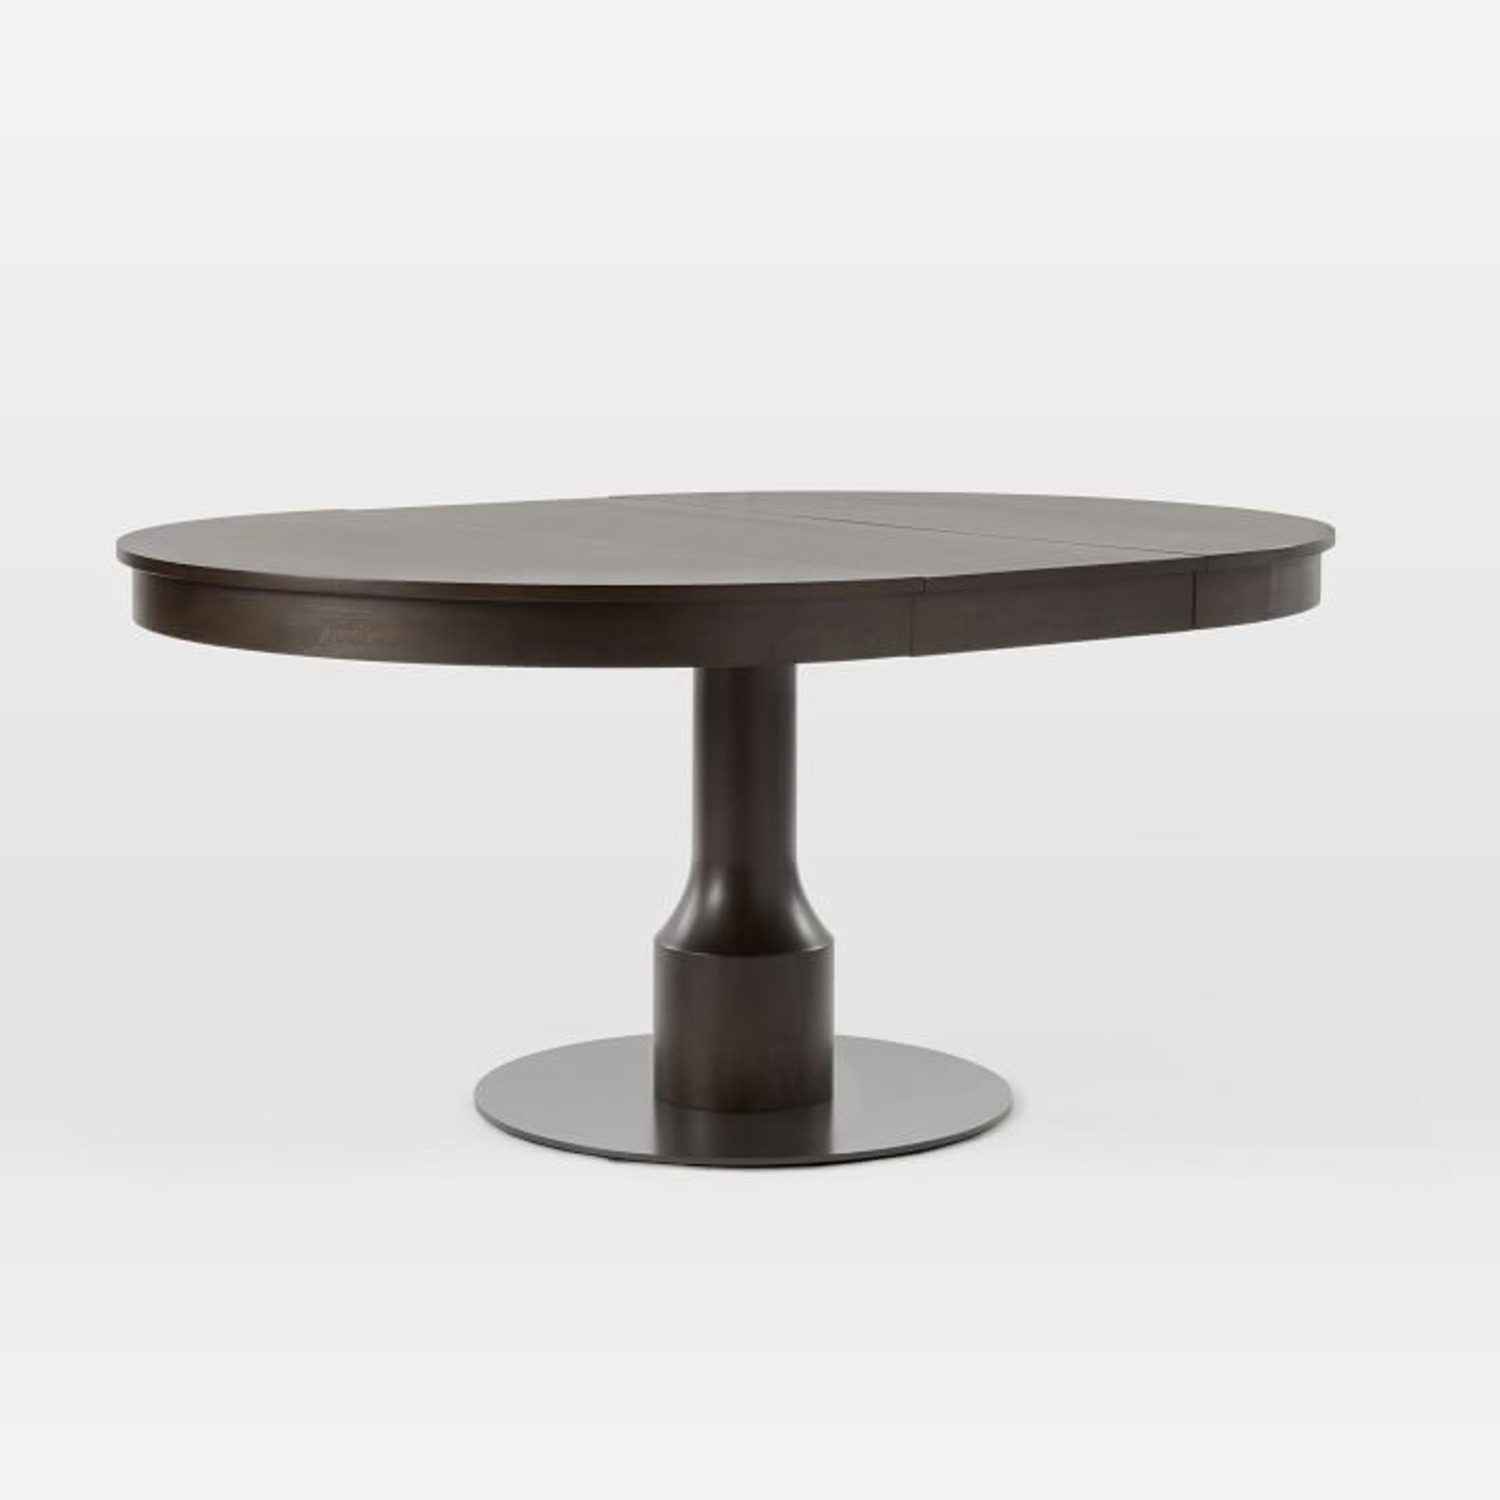 West Elm Turned Pedestal Expandable Dining Table - image-2